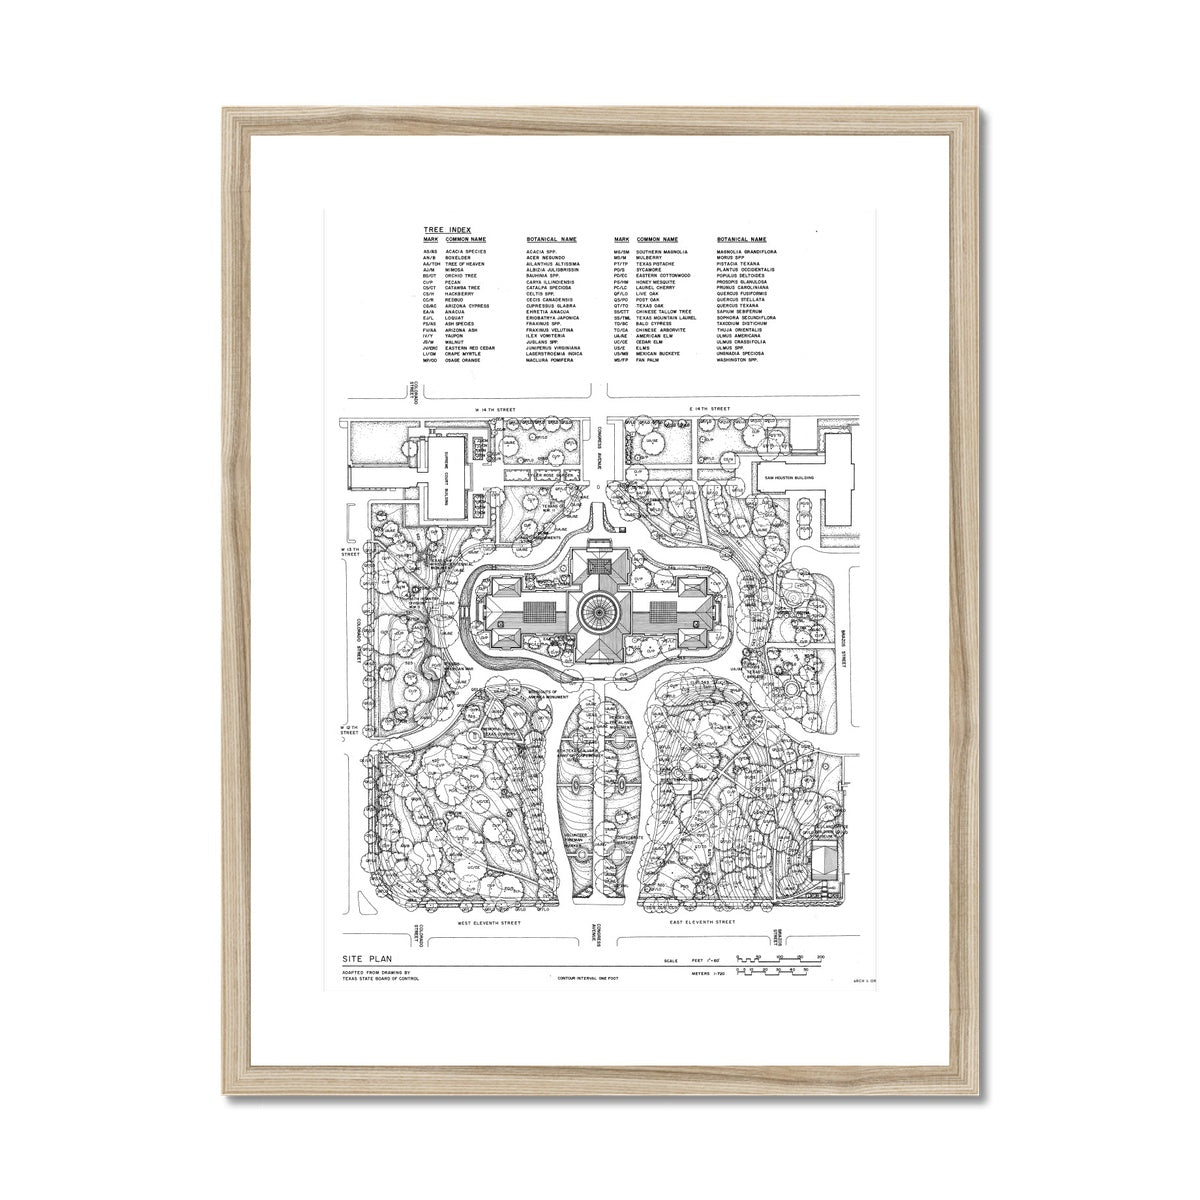 The Texas State Capitol Building - Site and Landscaping Plan - White -  Framed & Mounted Print